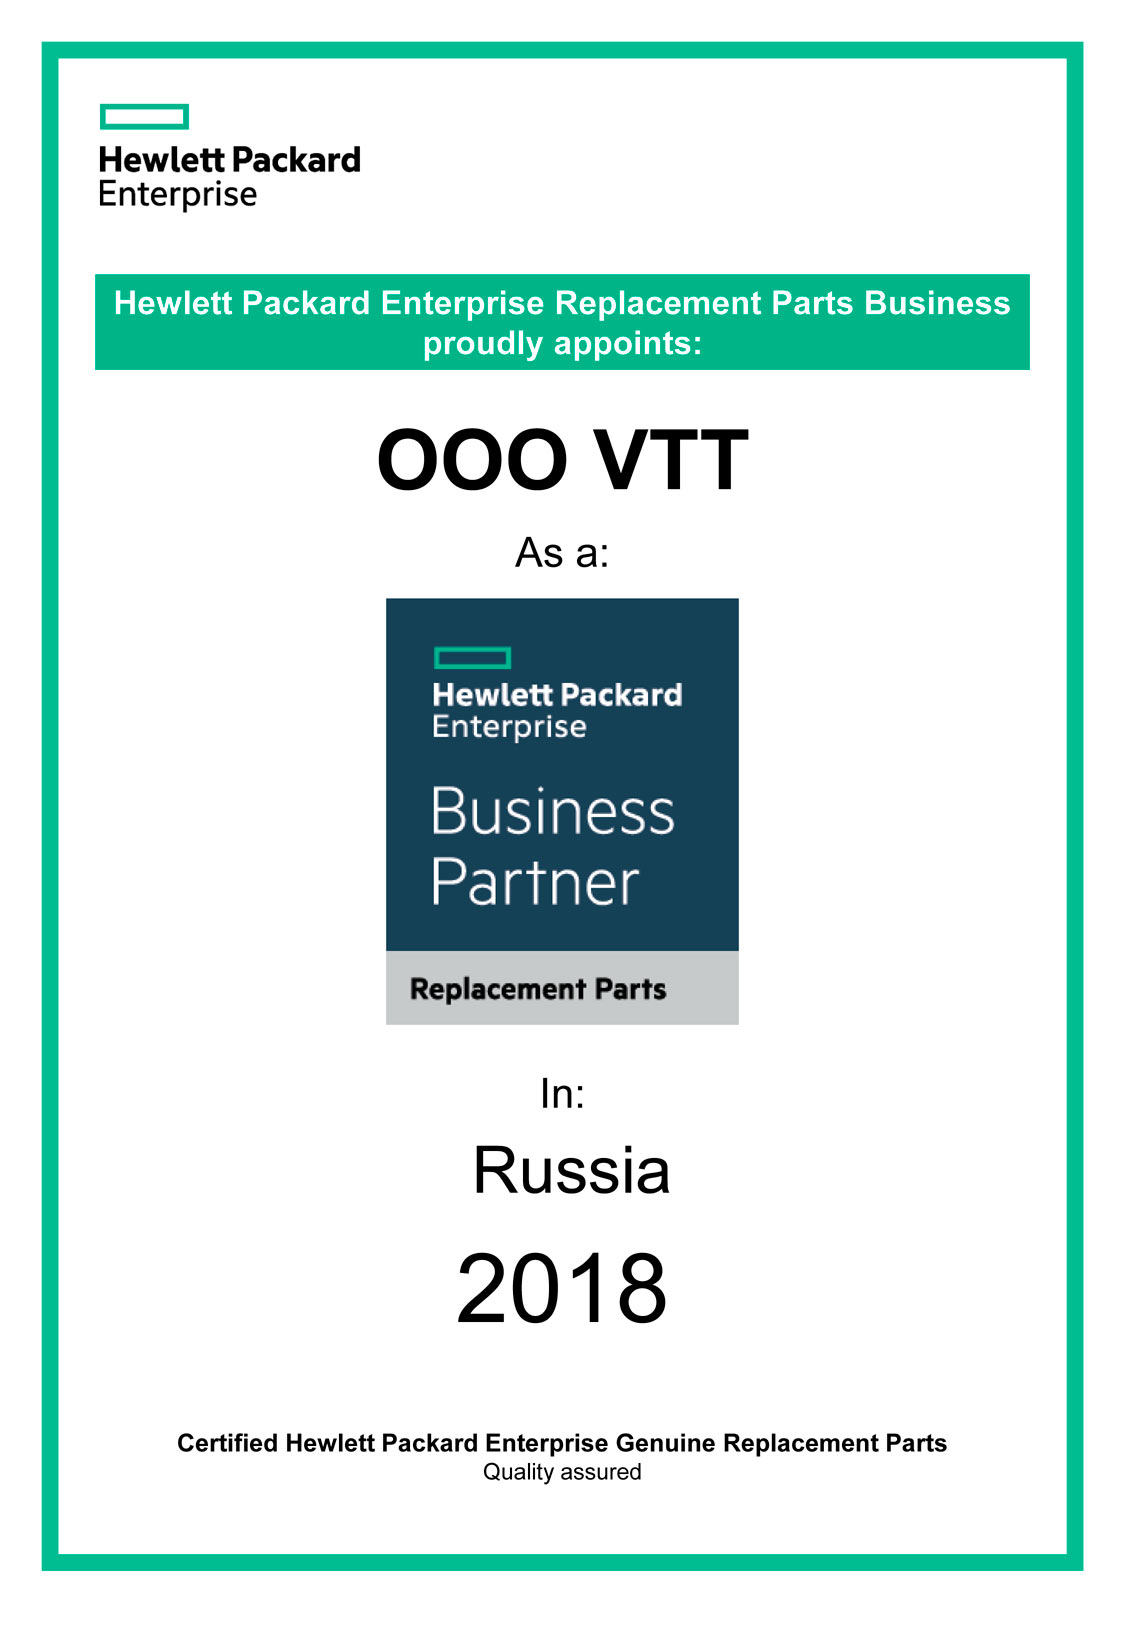 BusinessPartner-HPE-2018.jpg